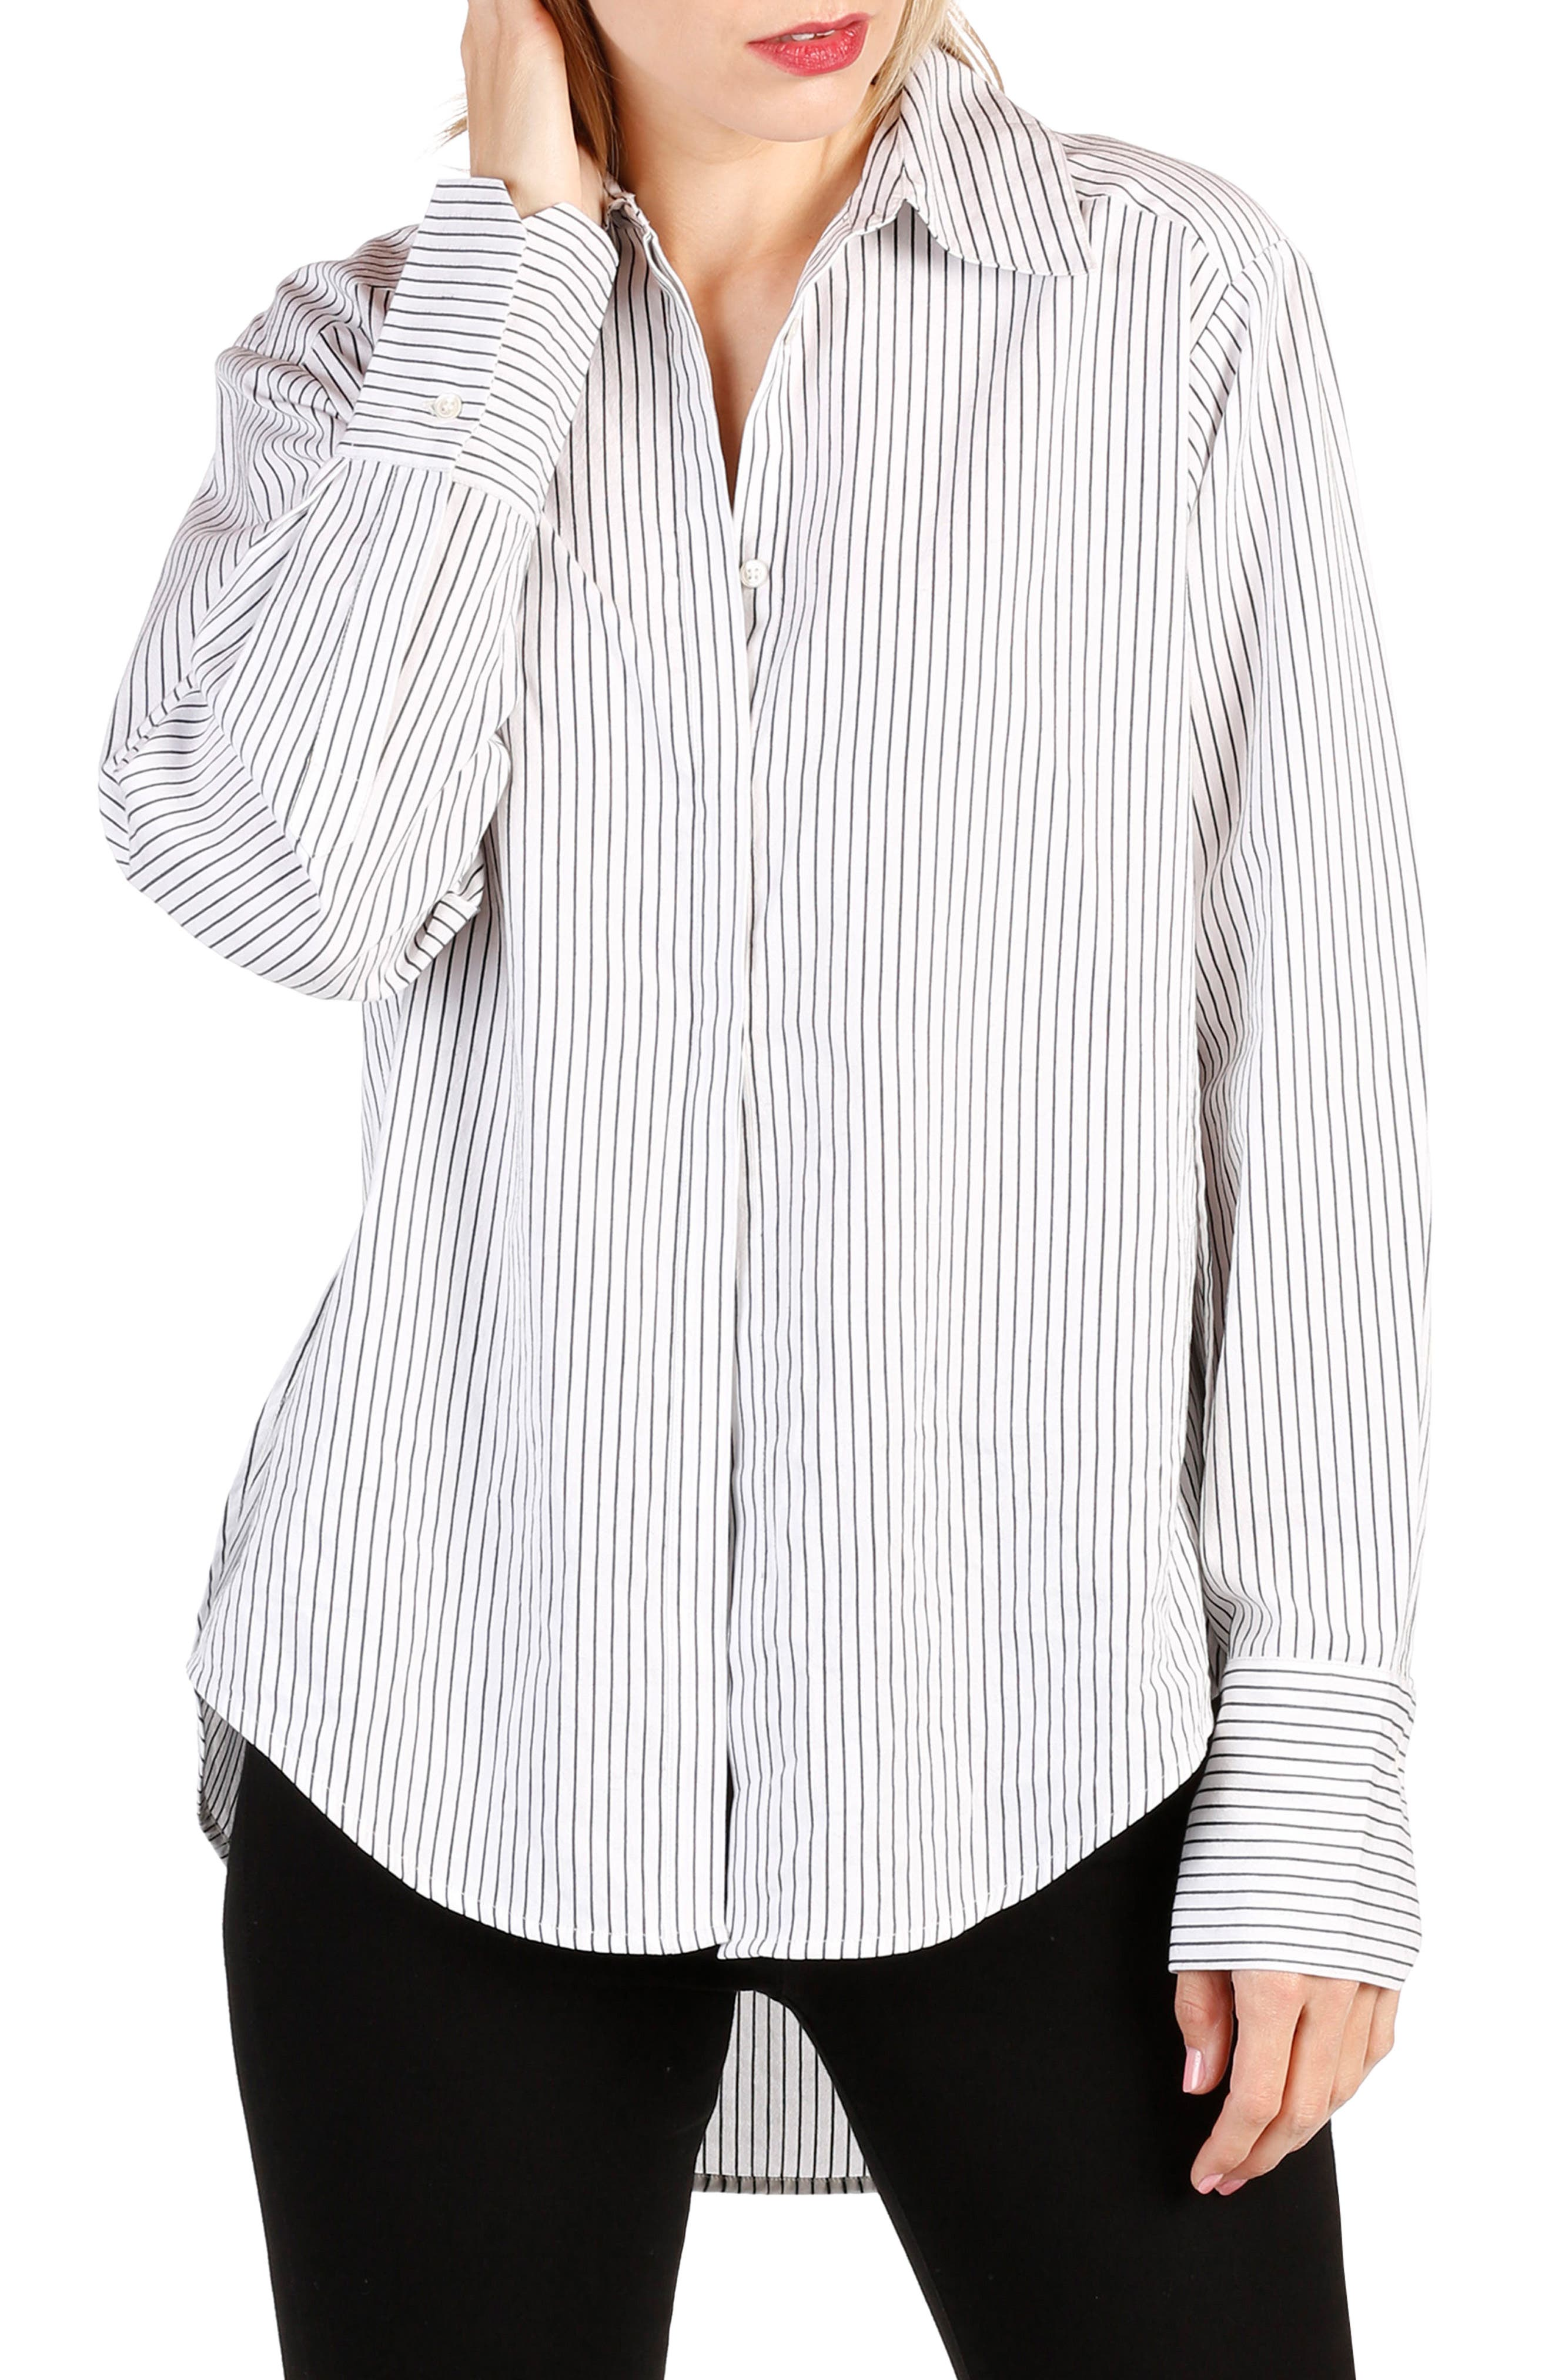 Clemence Stripe Shirt,                         Main,                         color, Black And White Stripe